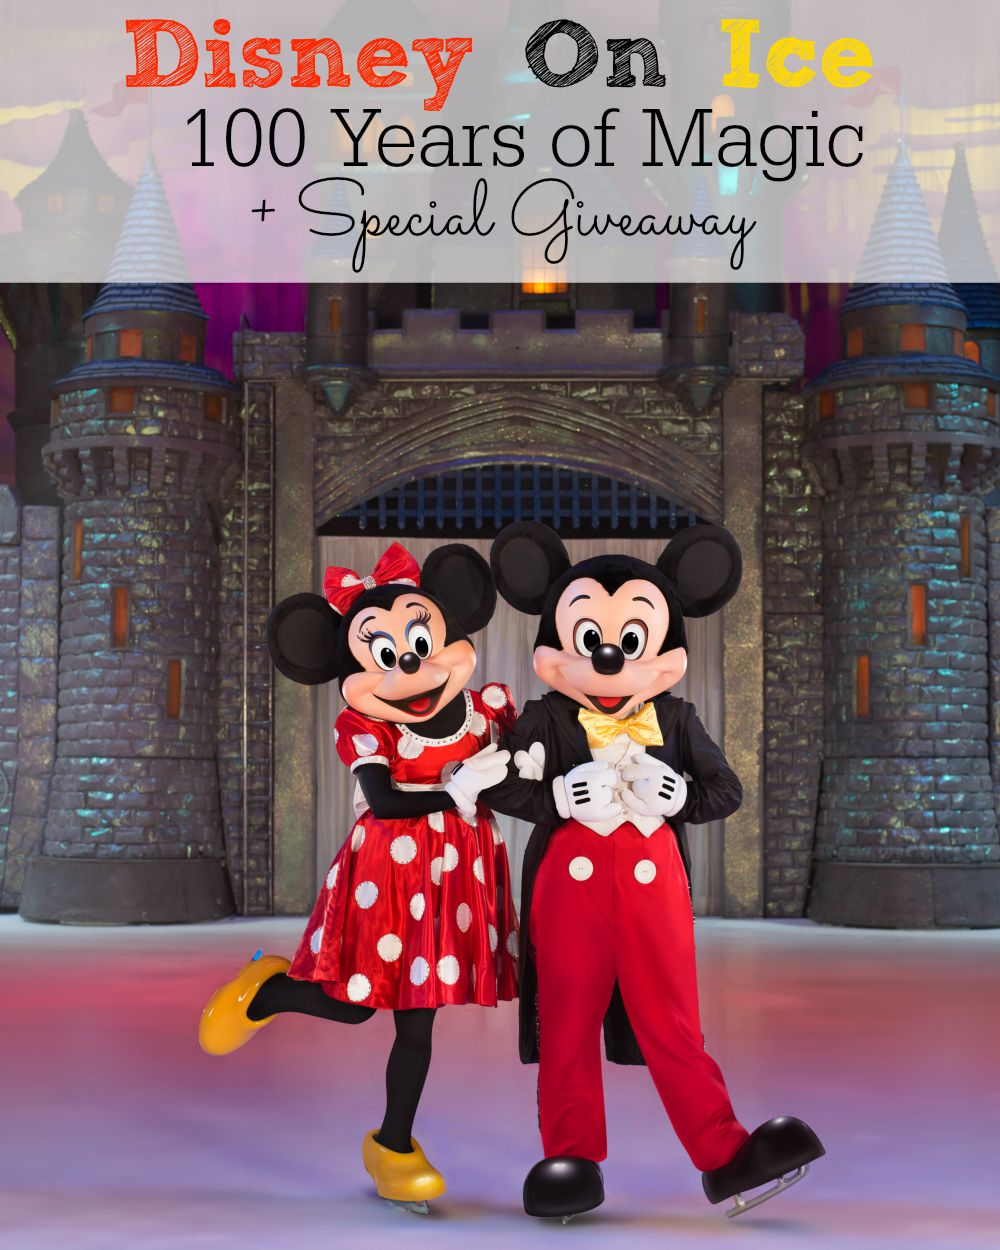 Disney On Ice 100 Years of Magic + Special Giveaway